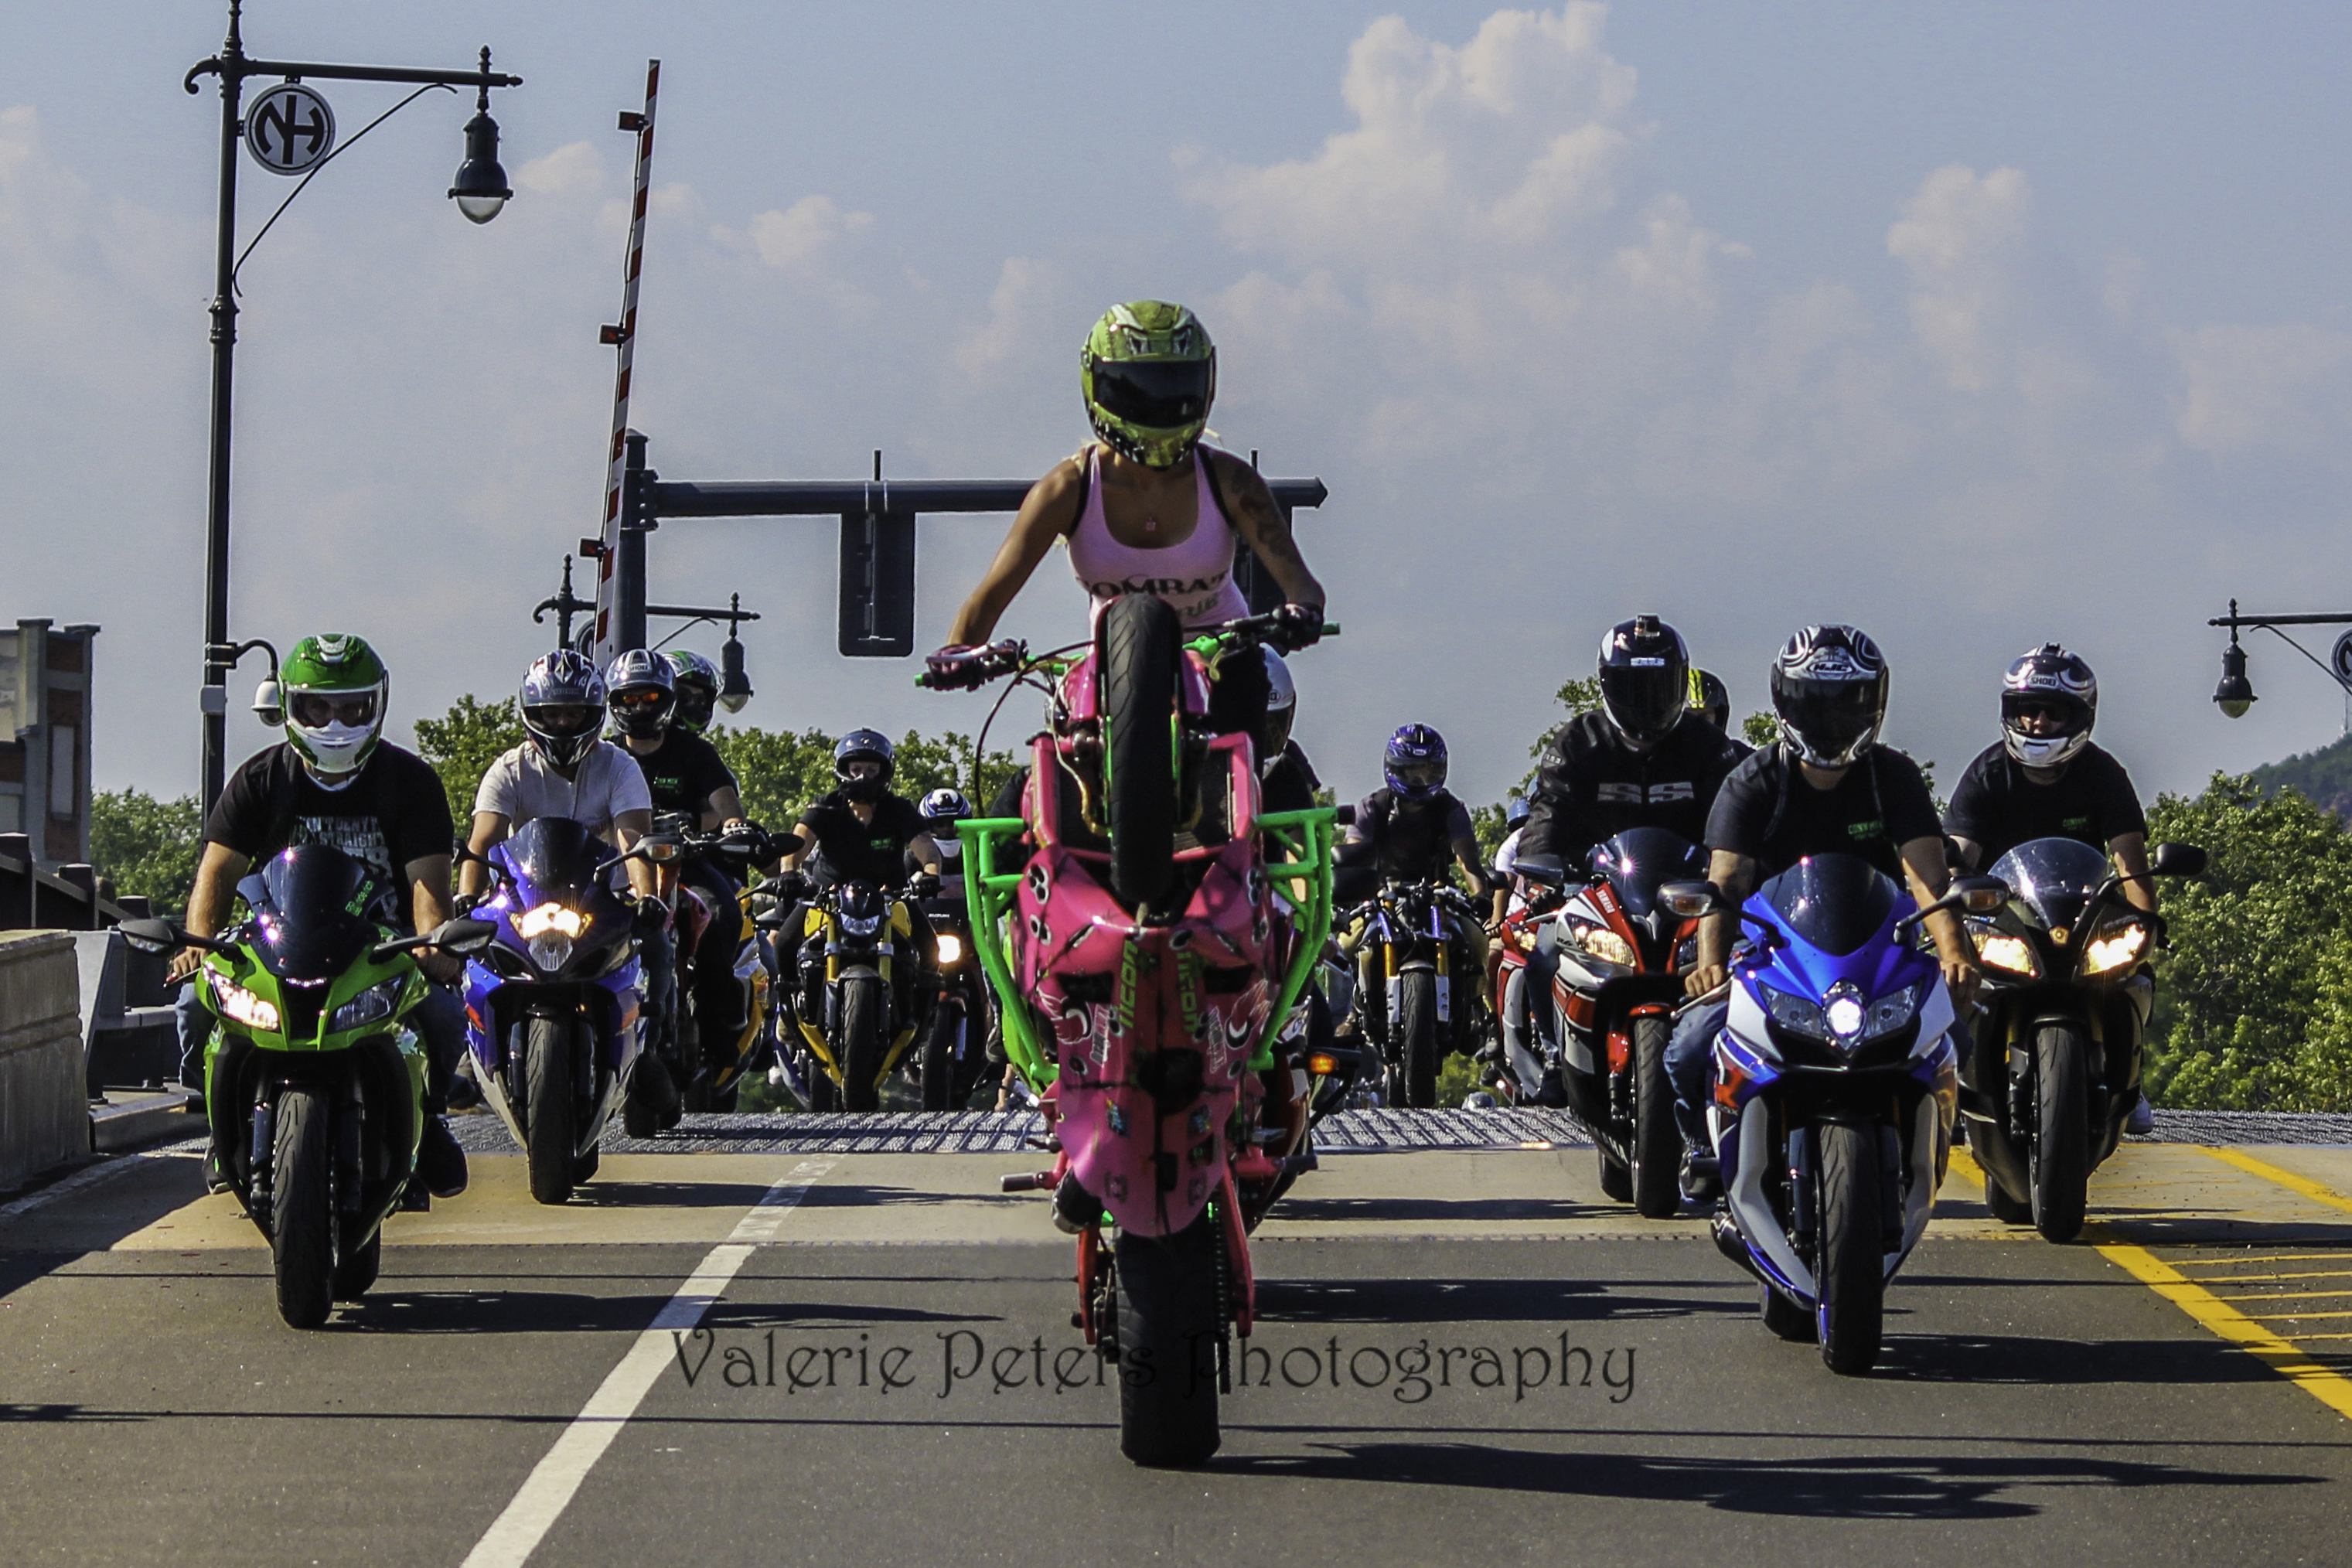 July12,2014-HooliganRide-CombatBarbie4MA30197440-0001